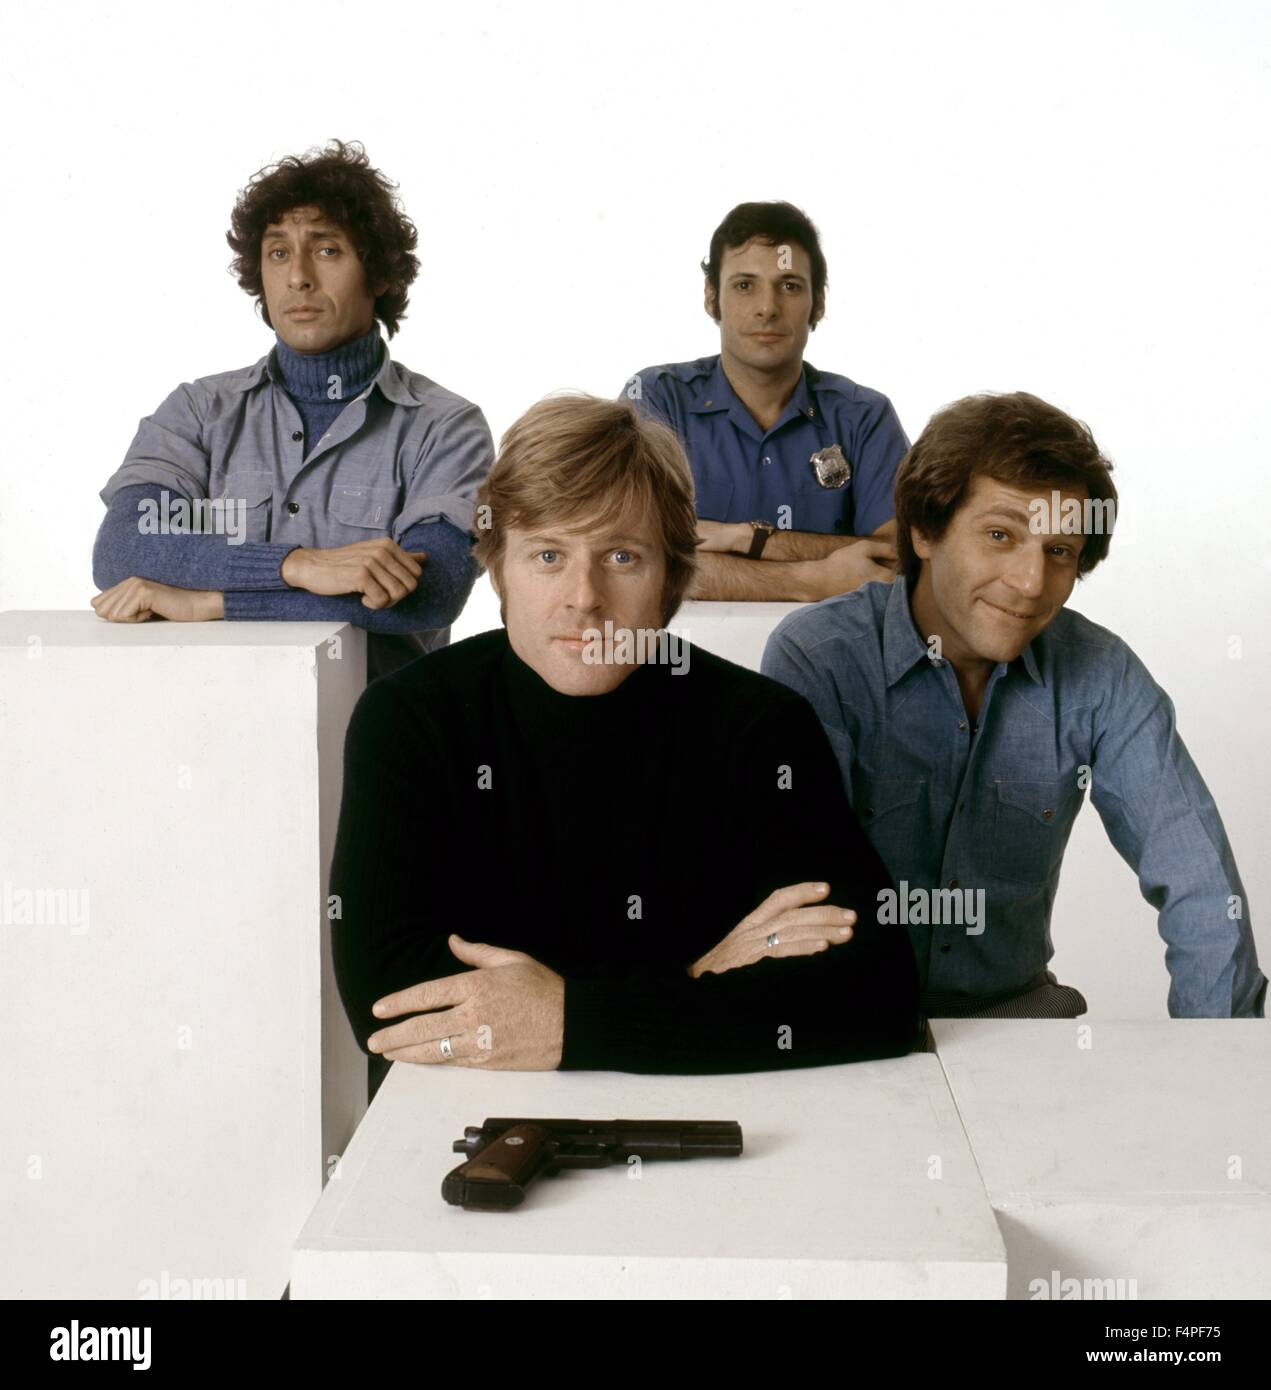 Ron Liebman, Paul Sand, Robert Redford and George Segal / The Hot Rock / 1972 directed by Peter Yats - Stock Image